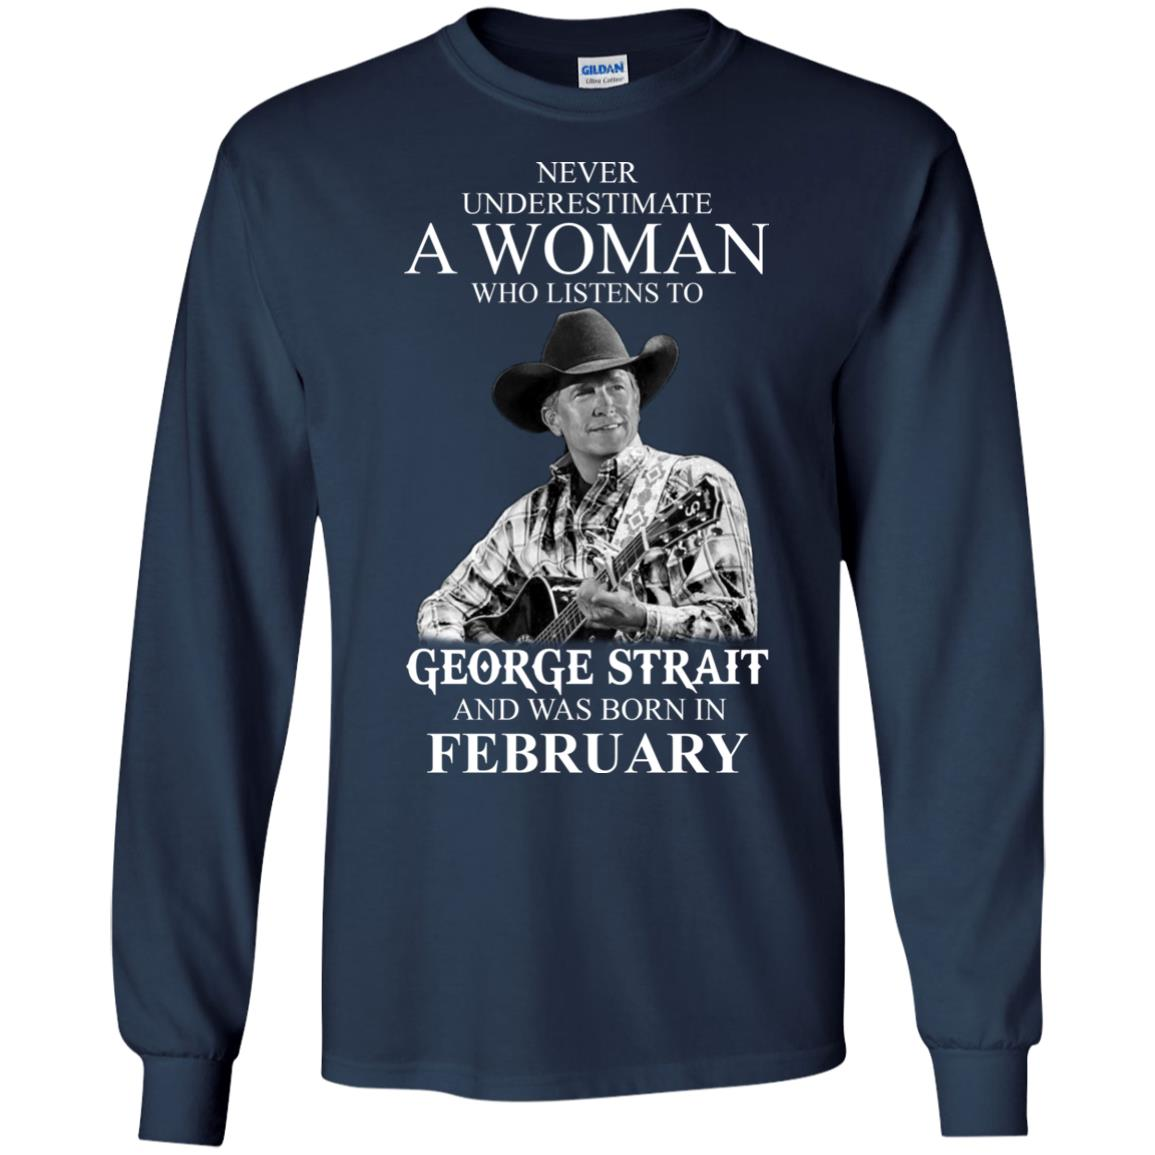 image 449 - Never Underestimate A Woman Who Listens To George Strait And Was Born In February shirt